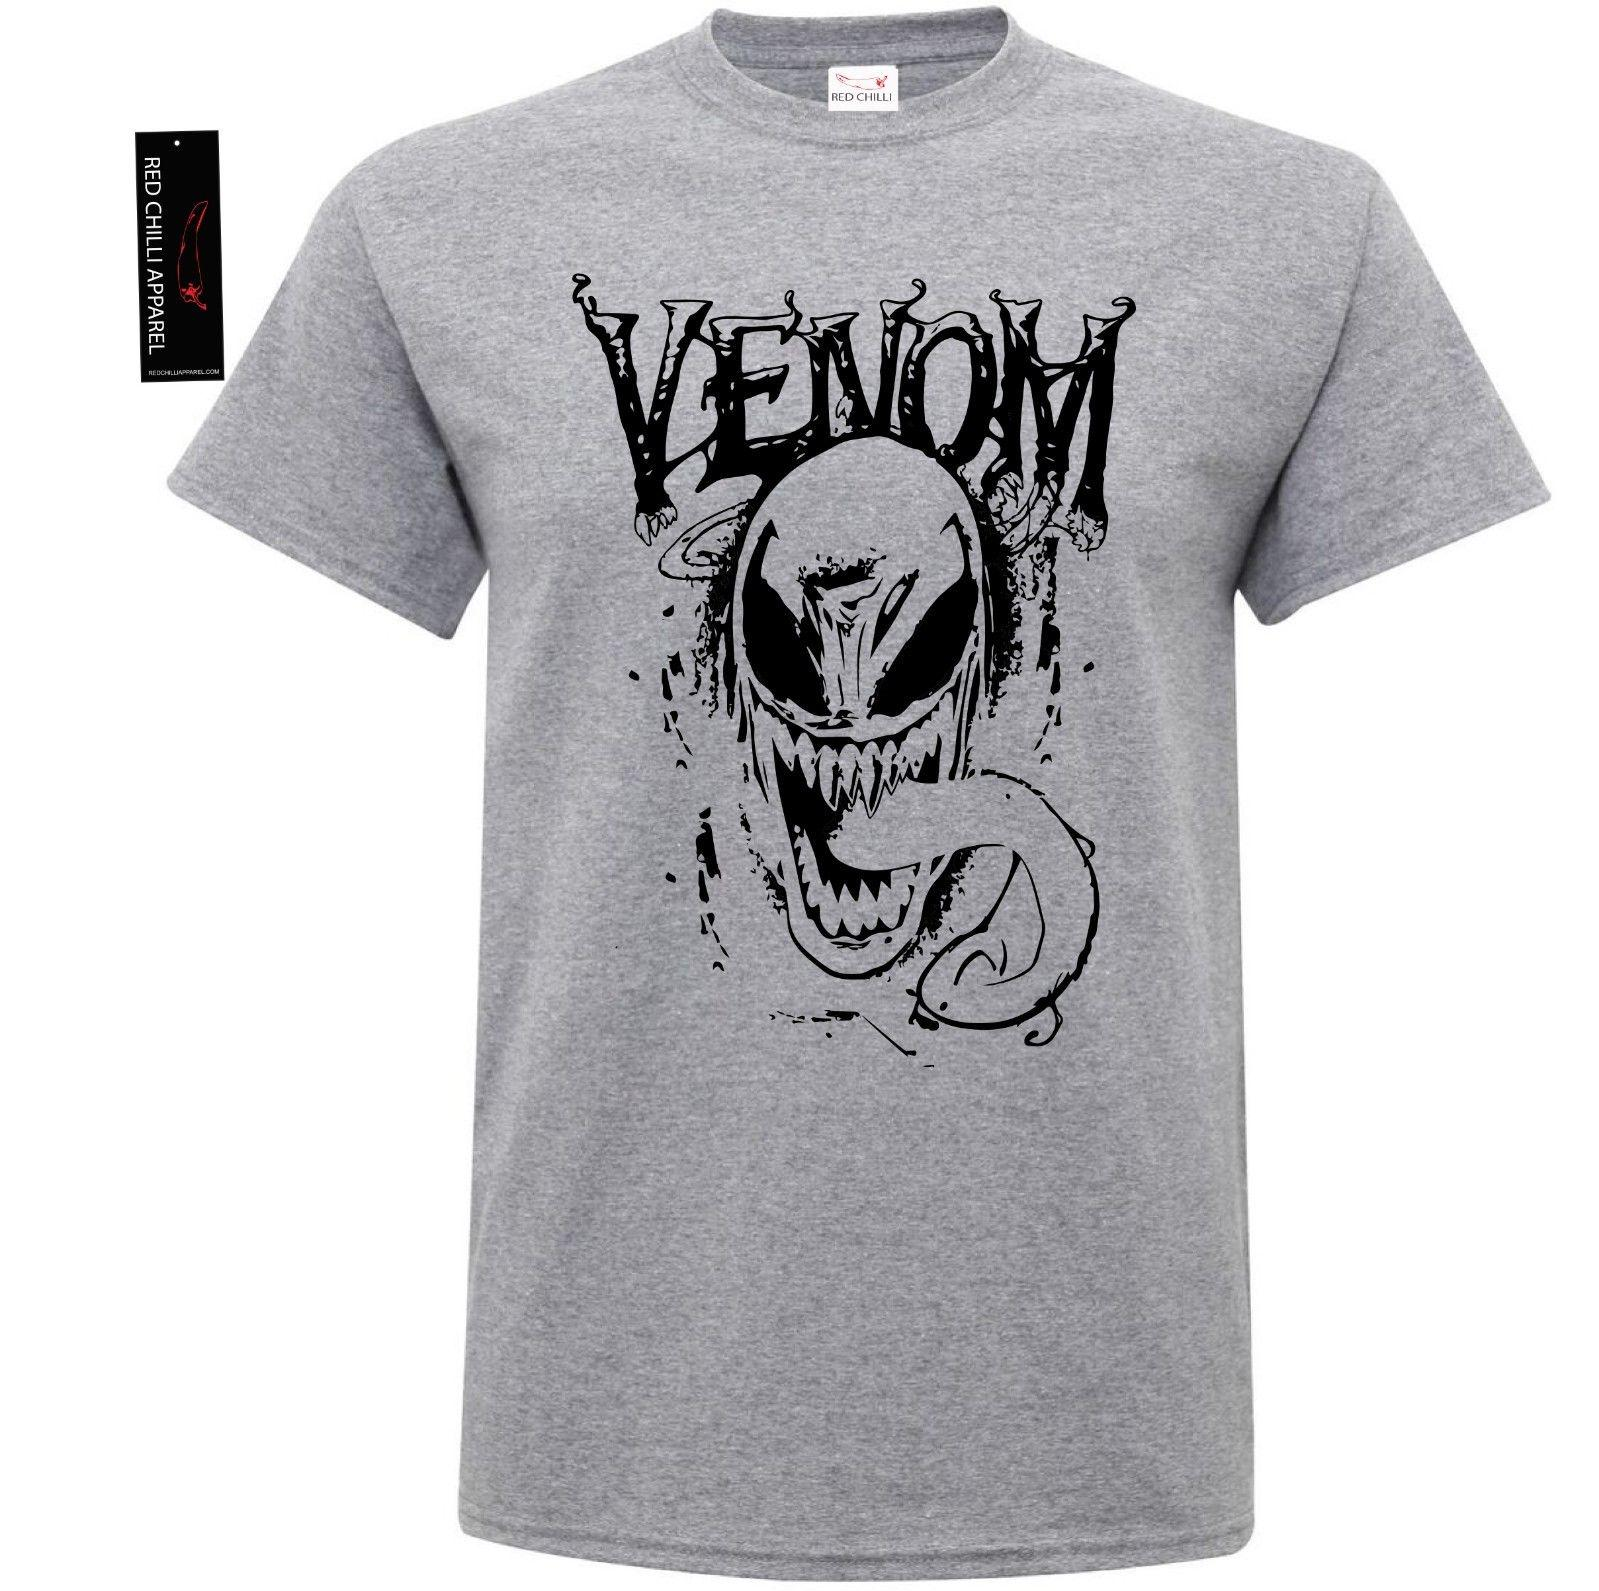 df12d7a6267d76 Marvel Venom Inspired T Shirt Face Mask Logo Spiderman Gym Workout Shirt A  Team Shirts Be T Shirts From Capable72, $11.17  DHgate.Com